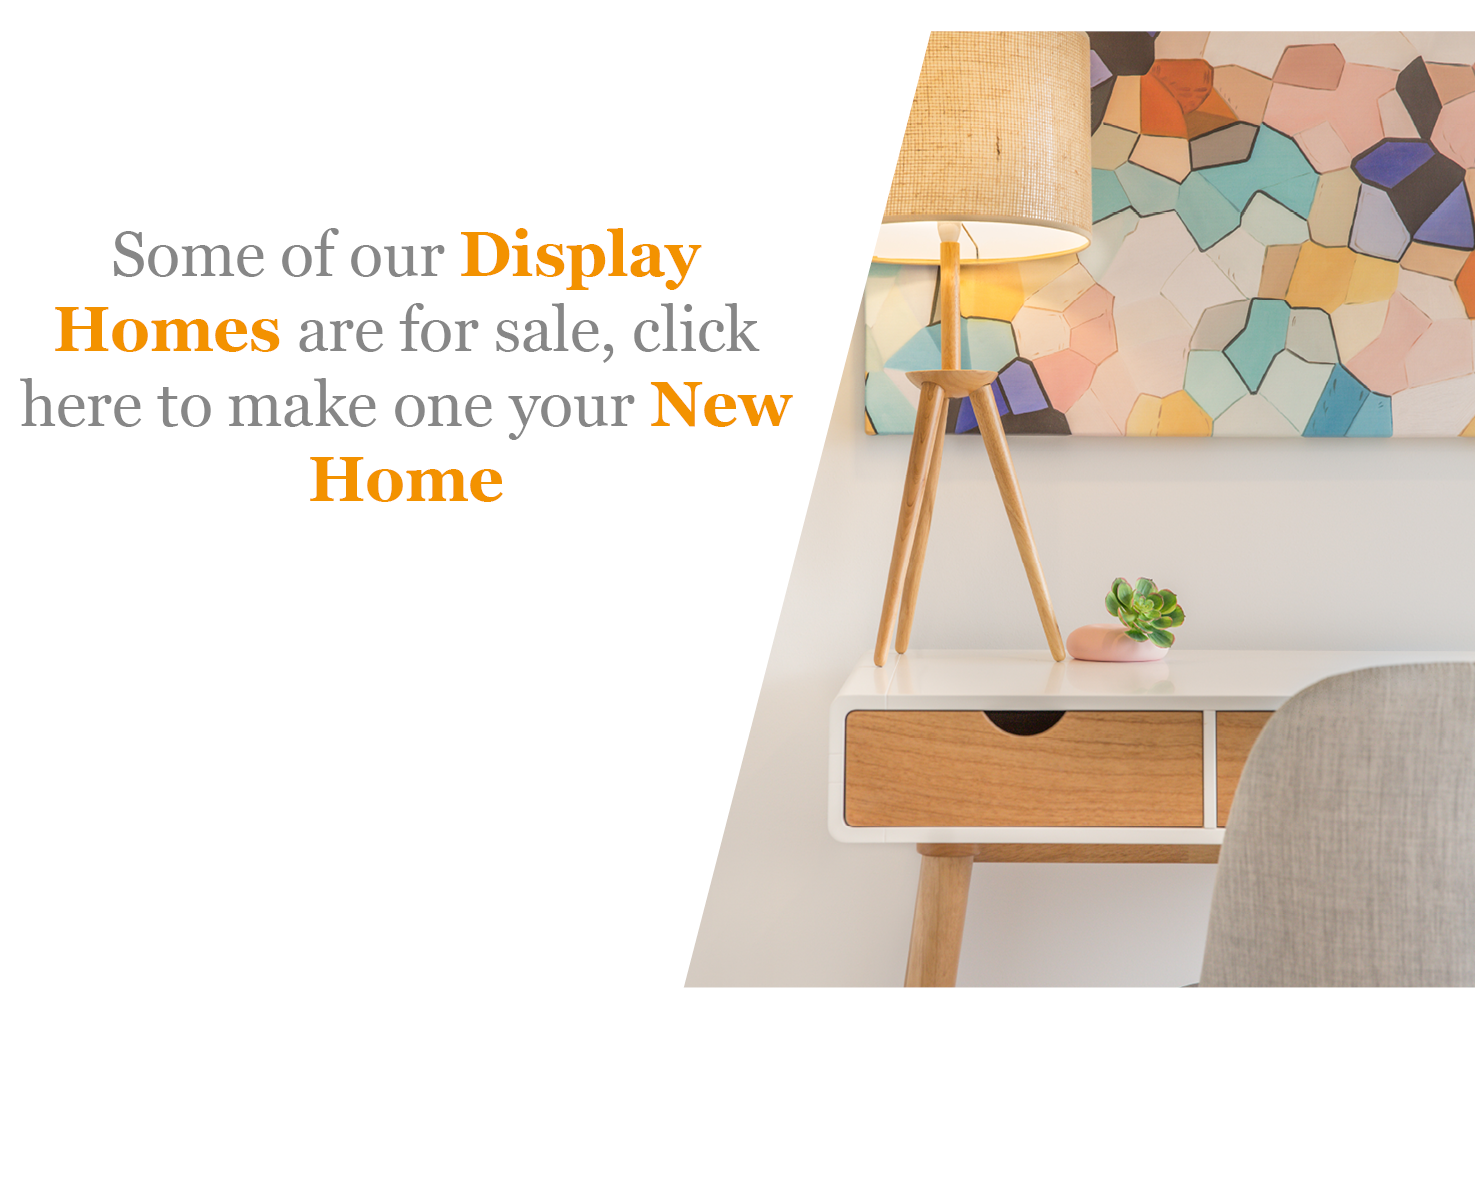 some-of-our-displays-are-for-sale-click-here-to-make-one-your-new-home